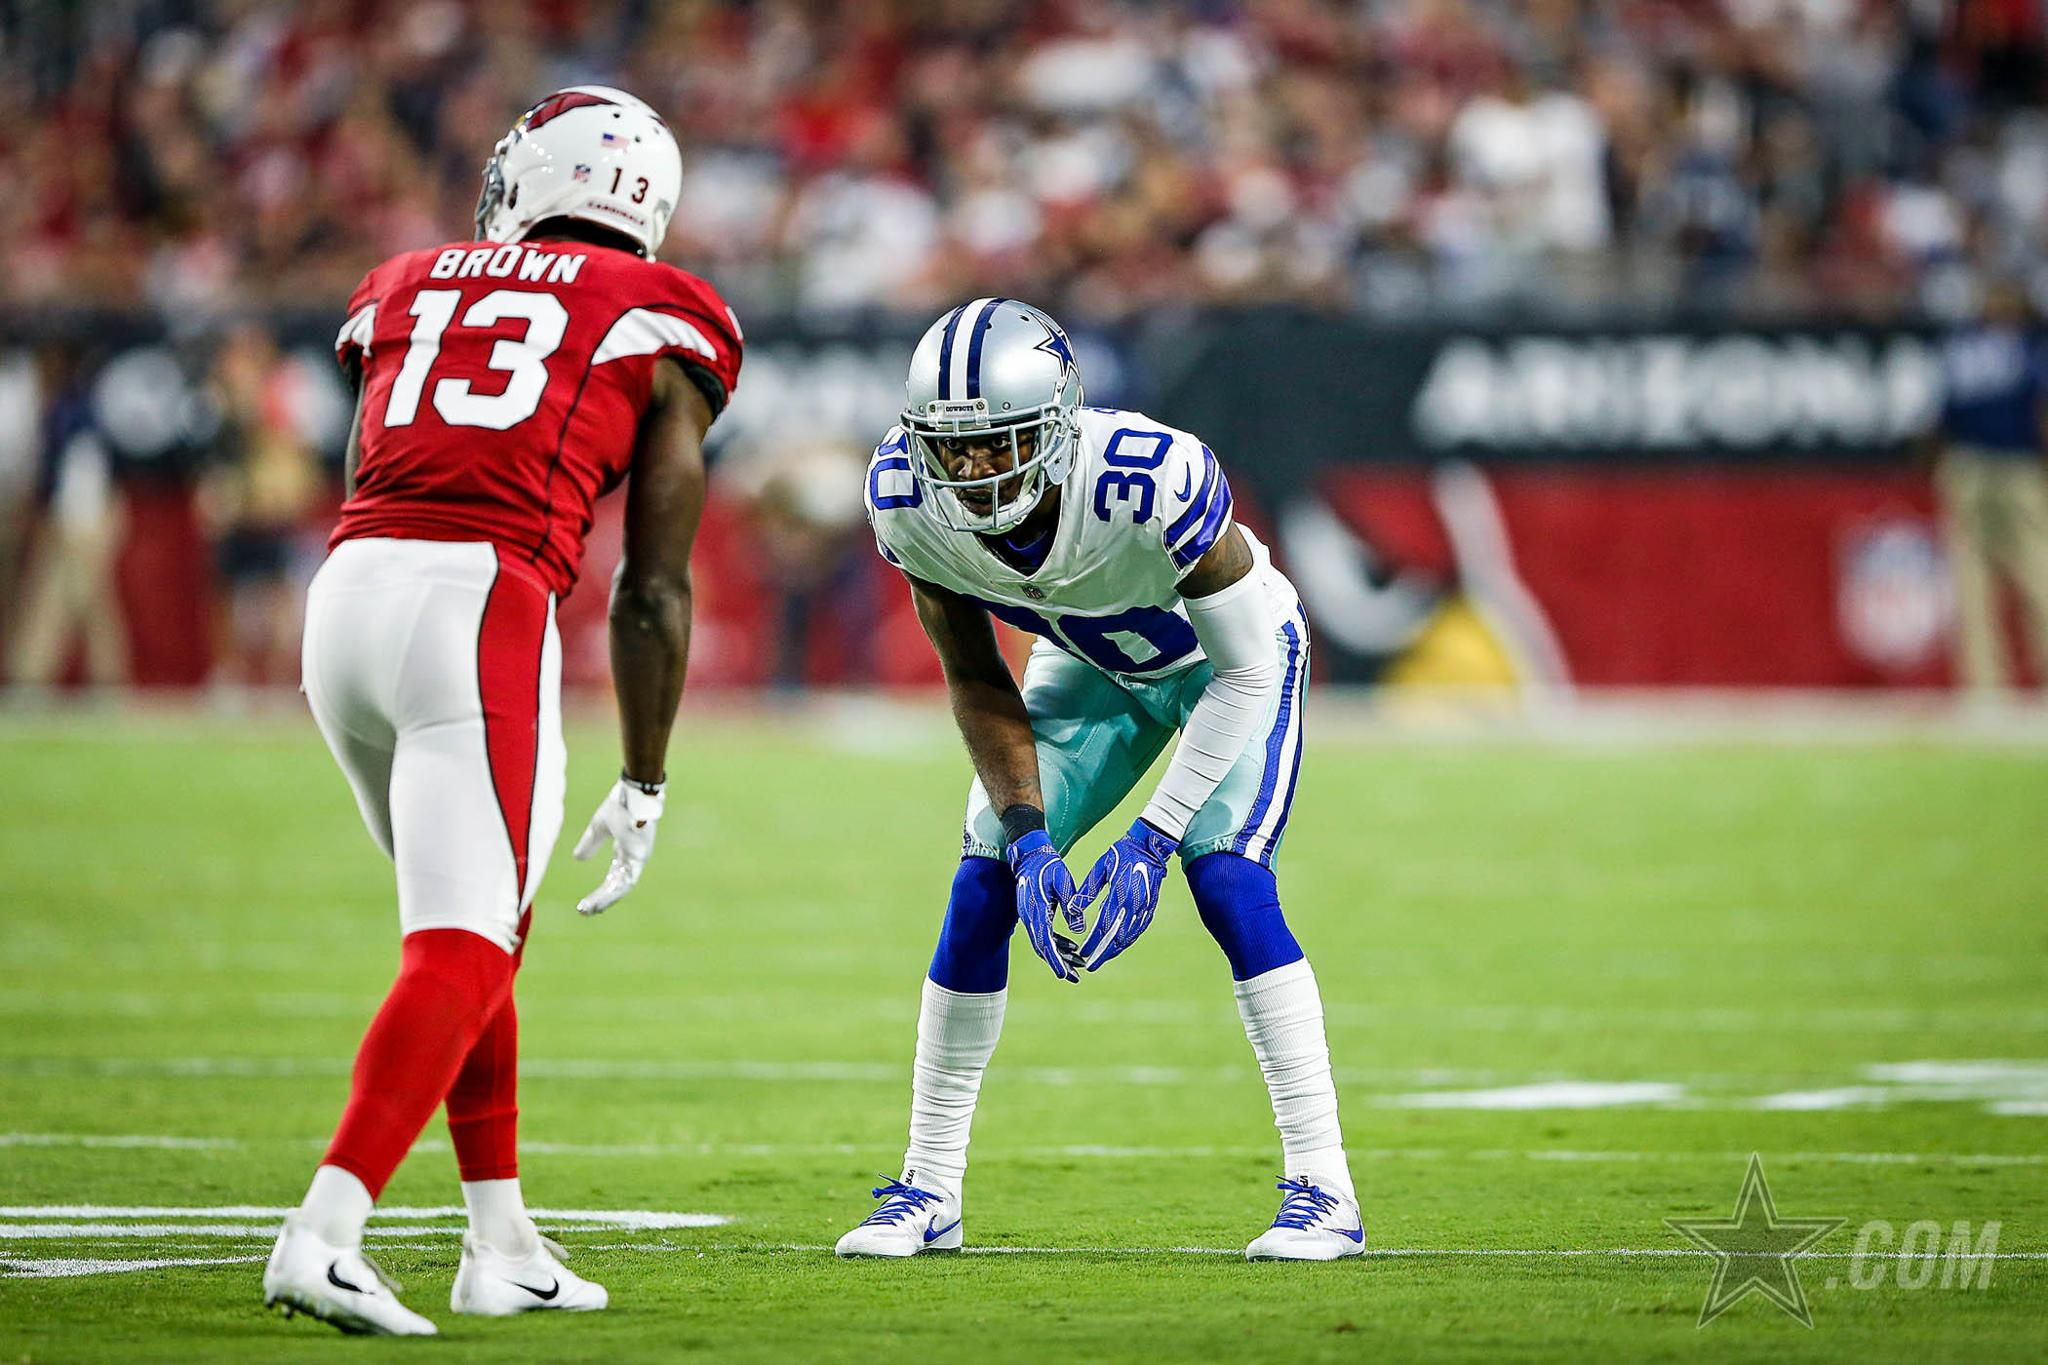 Take a look back at some of the best photos of Anthony Brown from the 2017 season.   �� https://t.co/ETRARqNUAB https://t.co/di8j3UJqgg